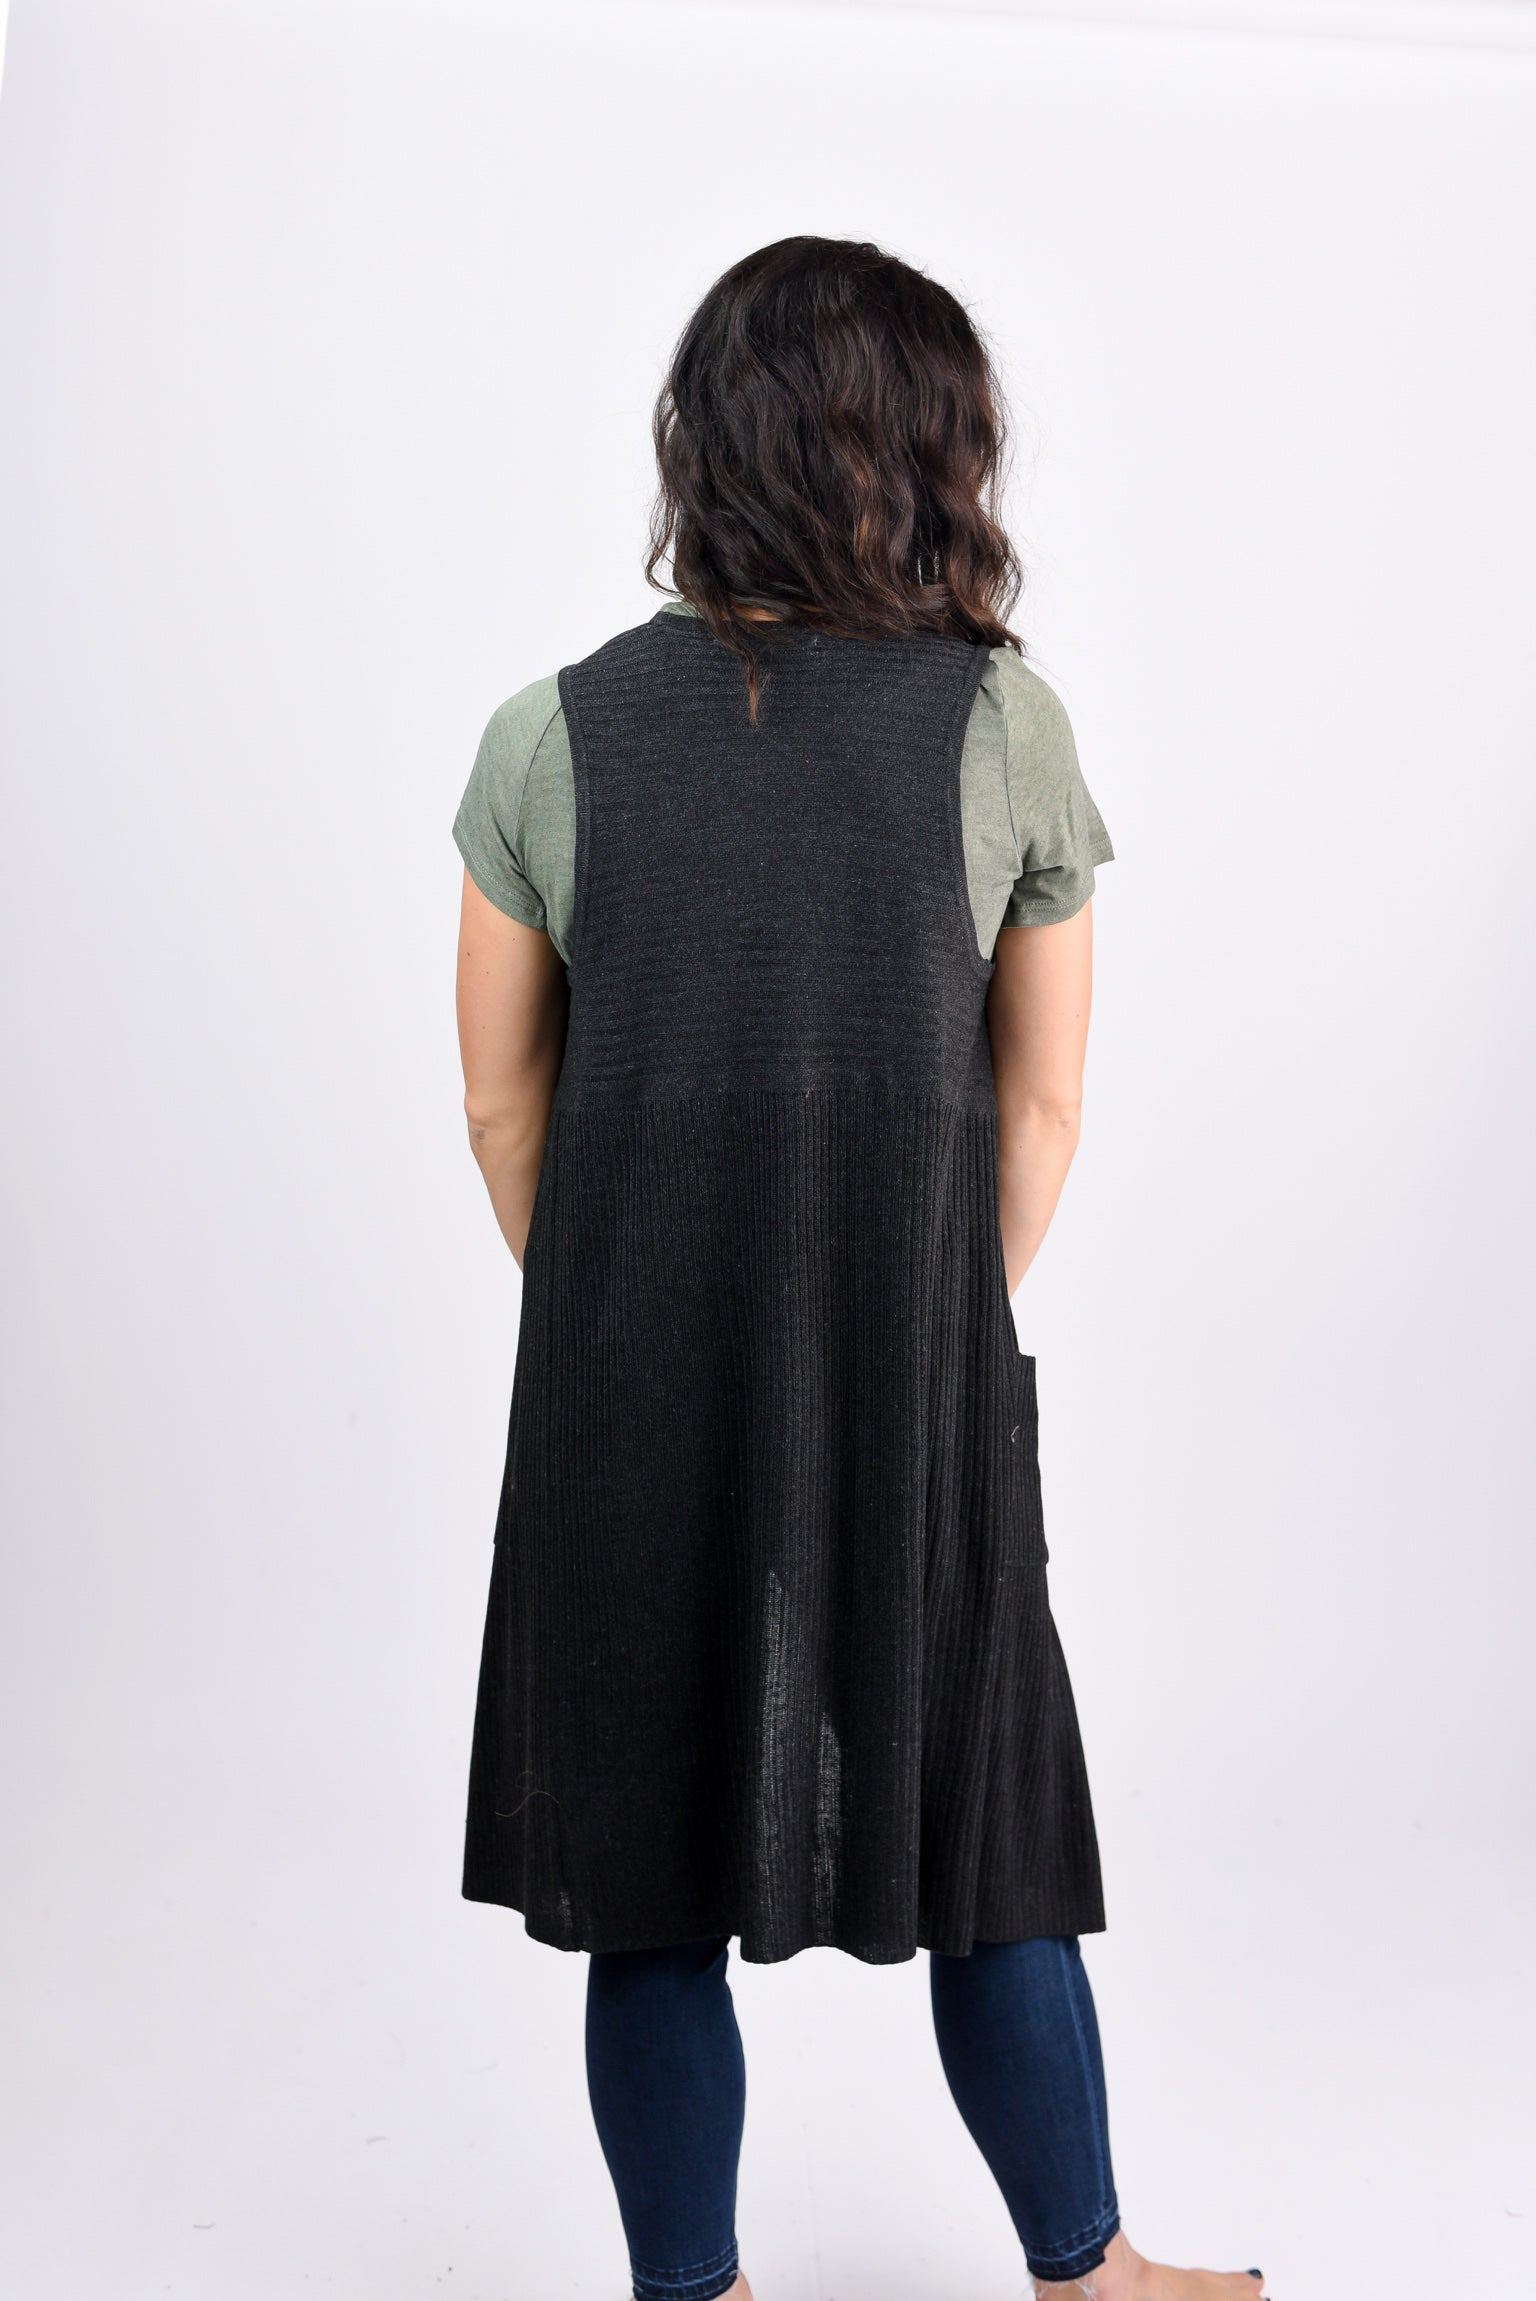 The Love We Share Charcoal Ribbed Sleeveless Duster Cardigan